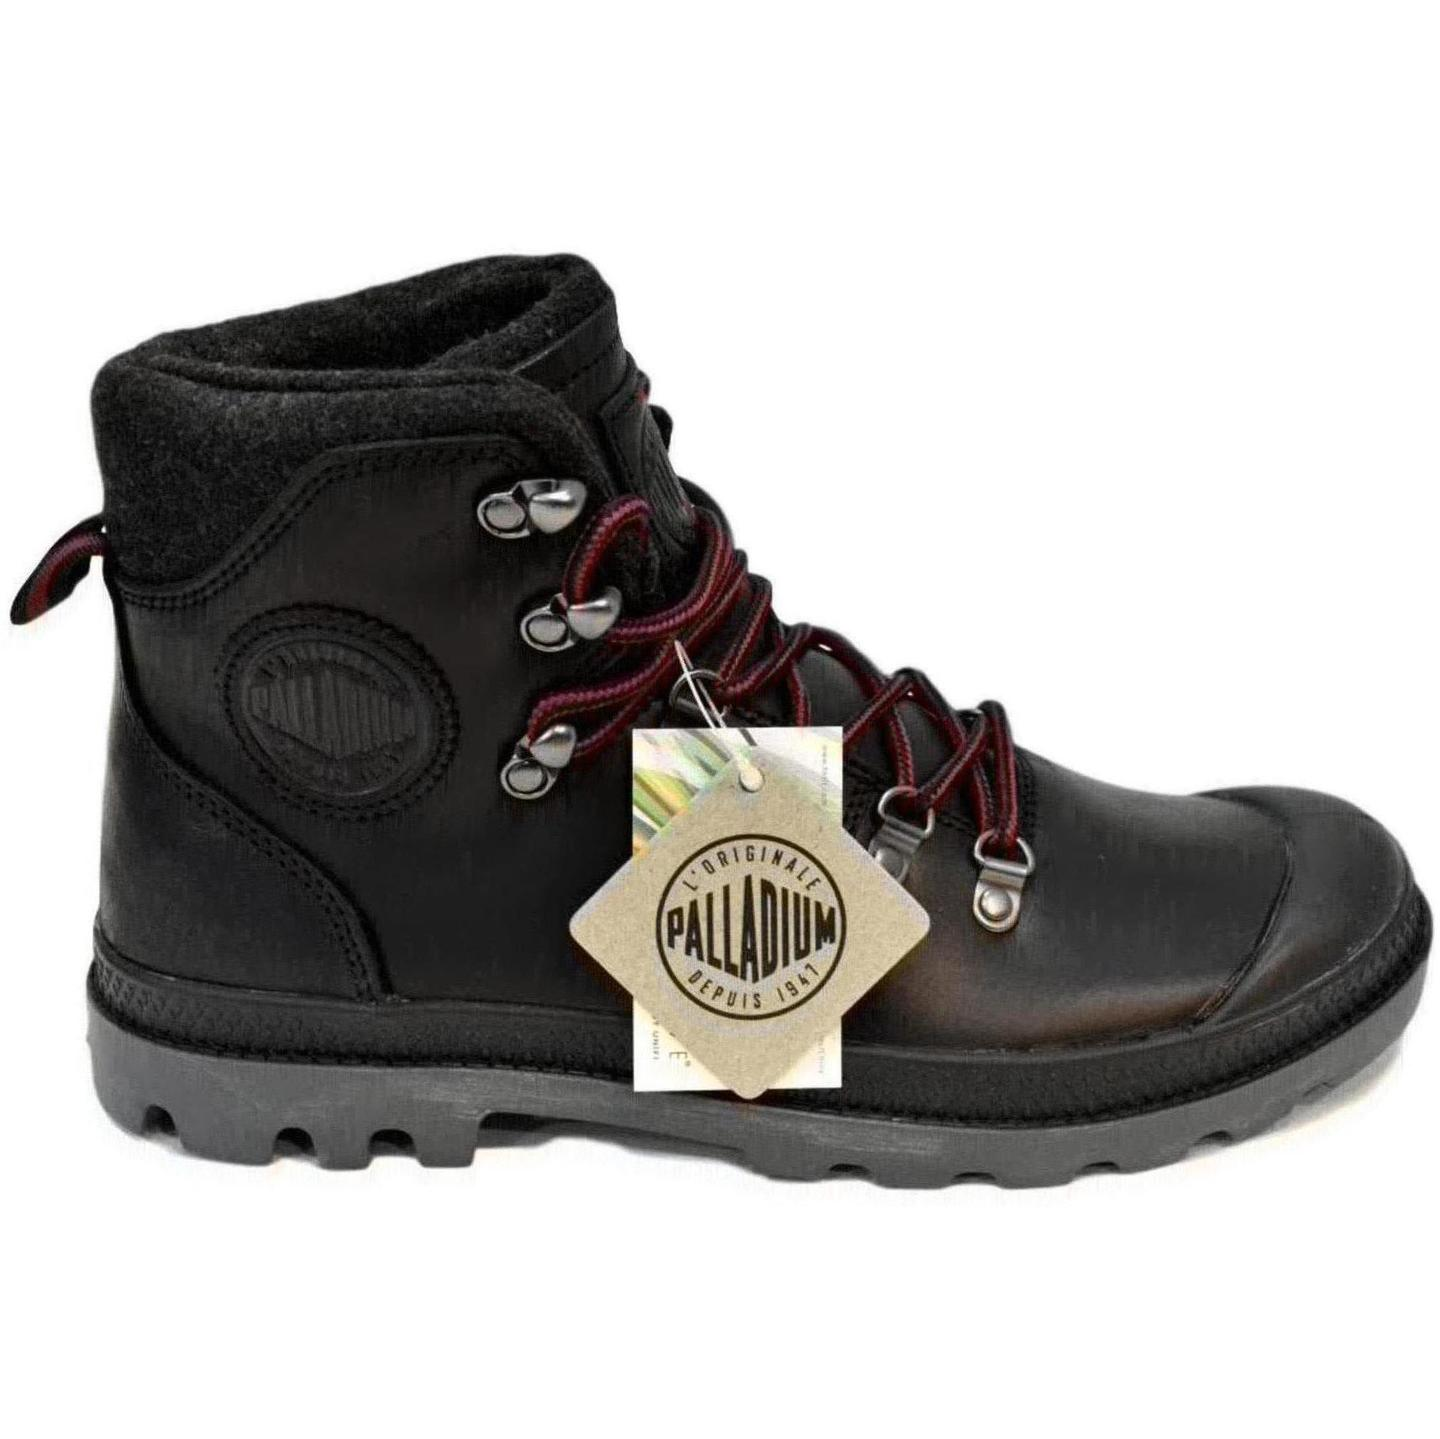 PALLADIUM PALLABROUSE HIKR PELLE COLORE BLACK RED CASTLEROCK